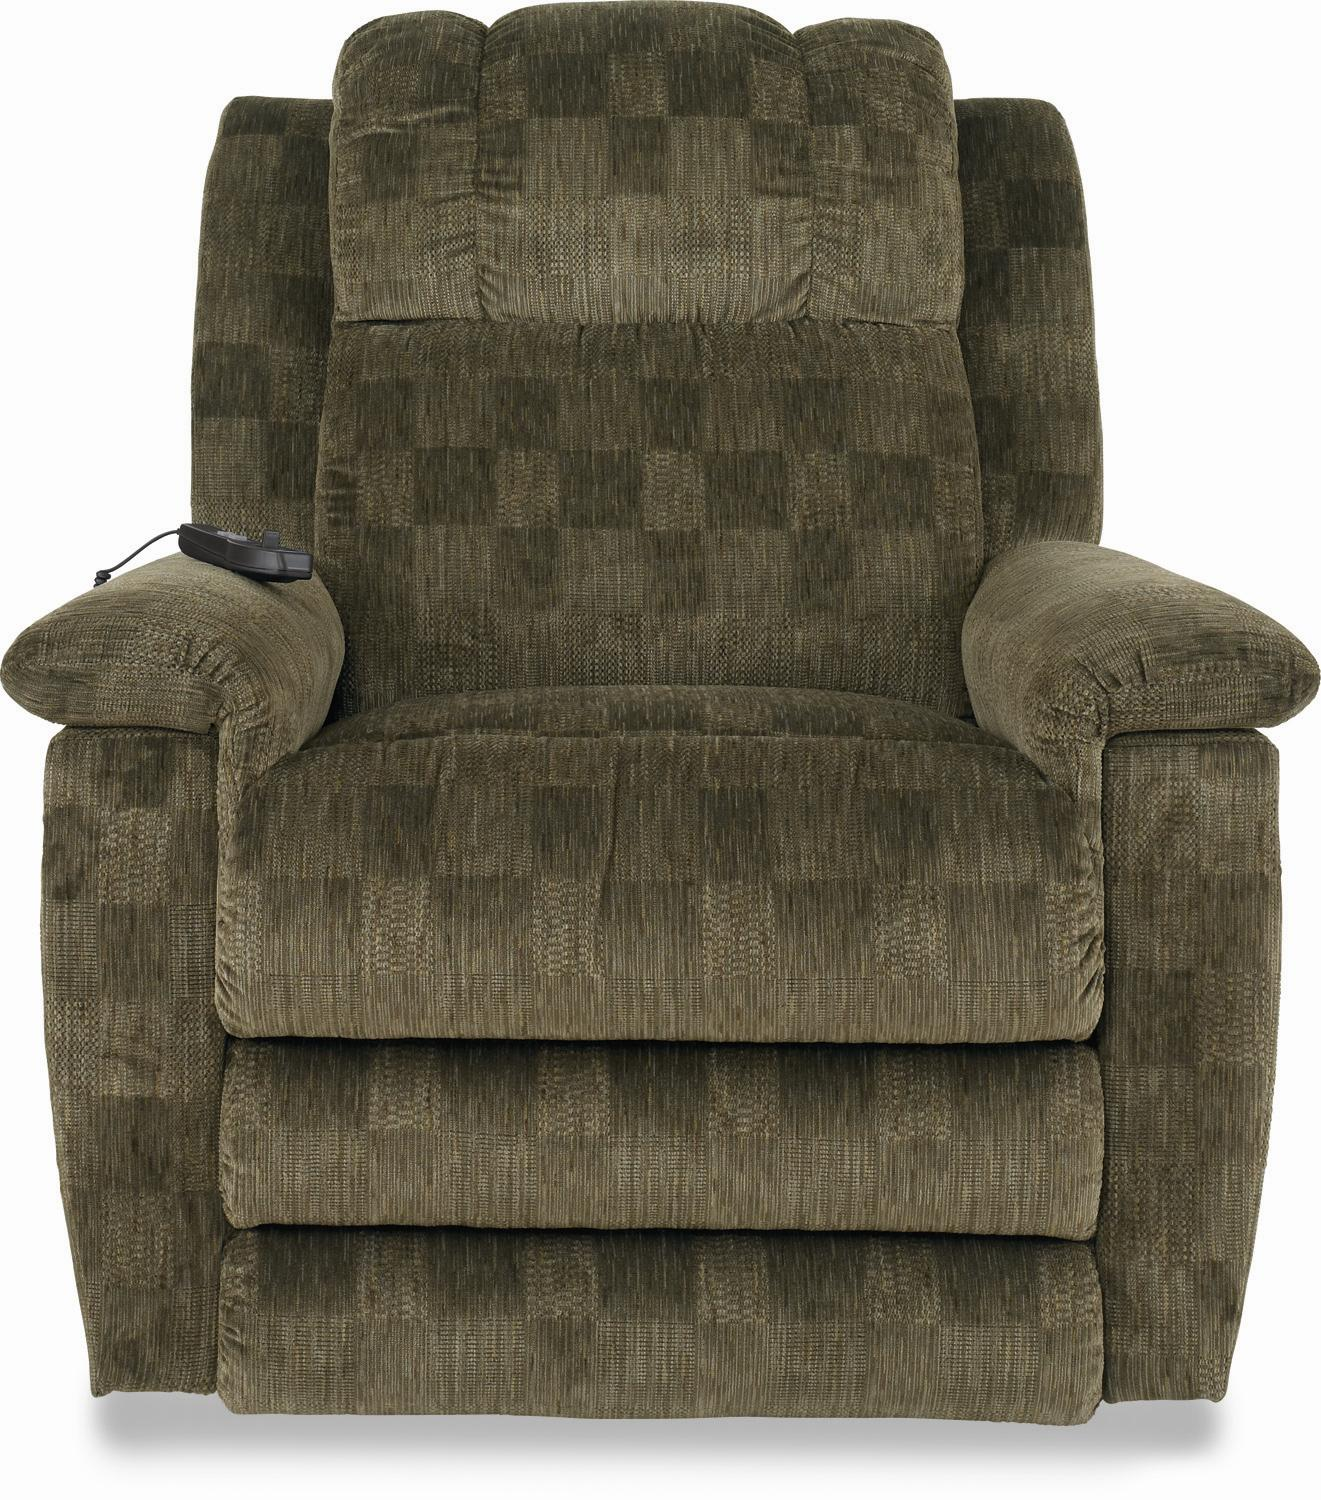 La Z Boy Recliners Clayton Luxury Lift Power Recliner with Heat